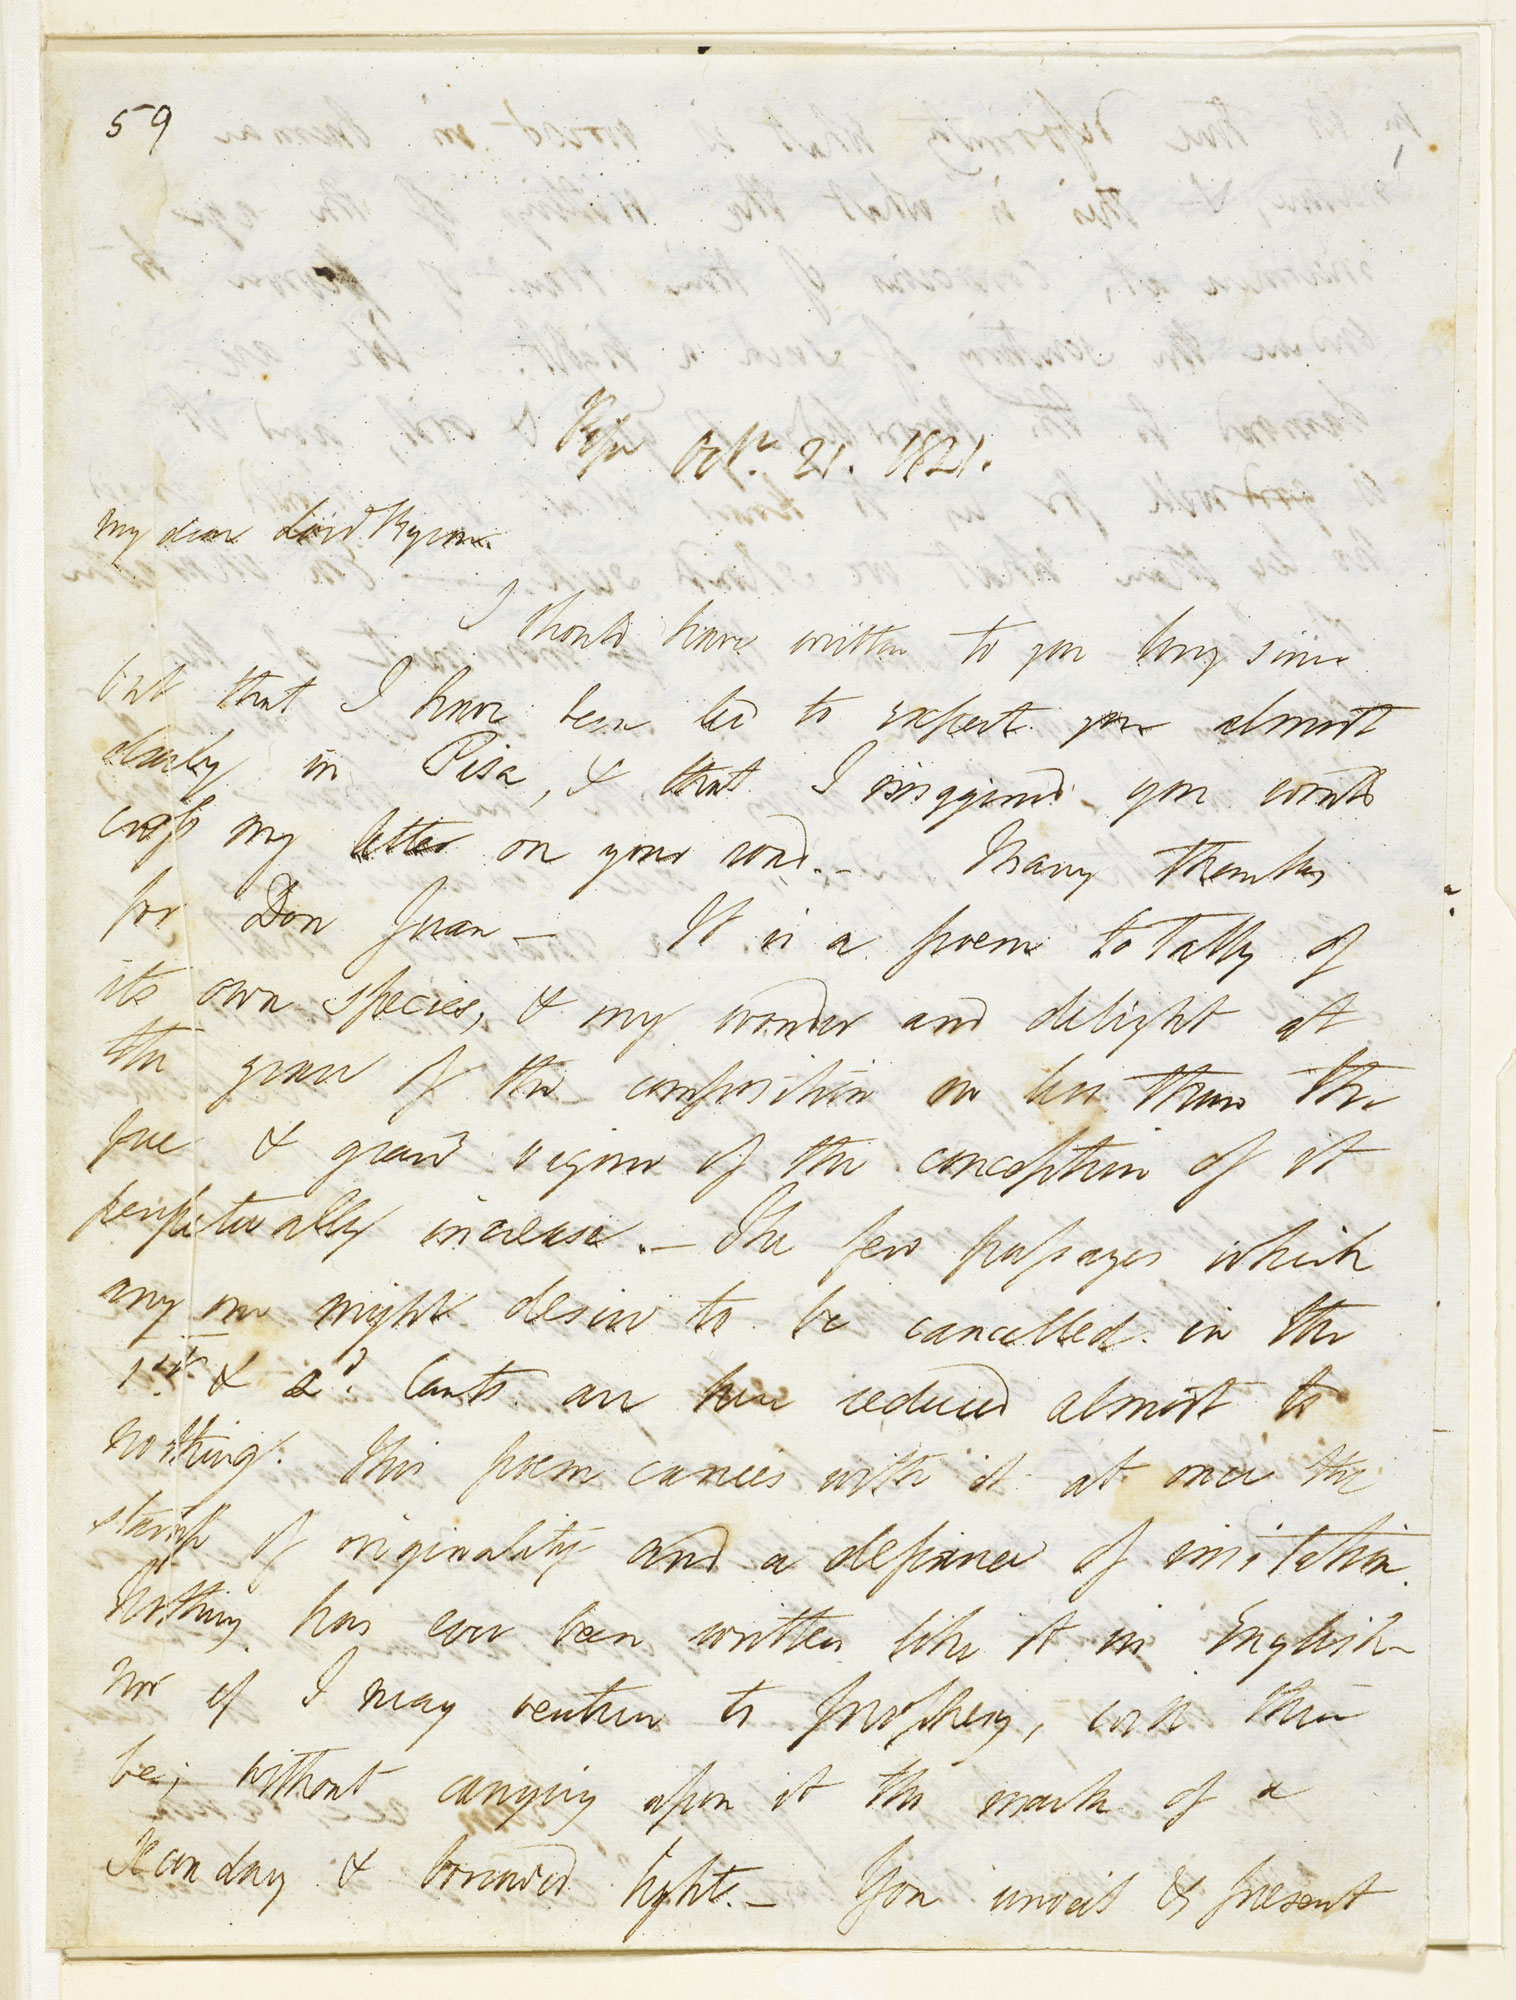 Letter from P B Shelley to Lord Byron, concerning Byron's poem 'Don Juan'